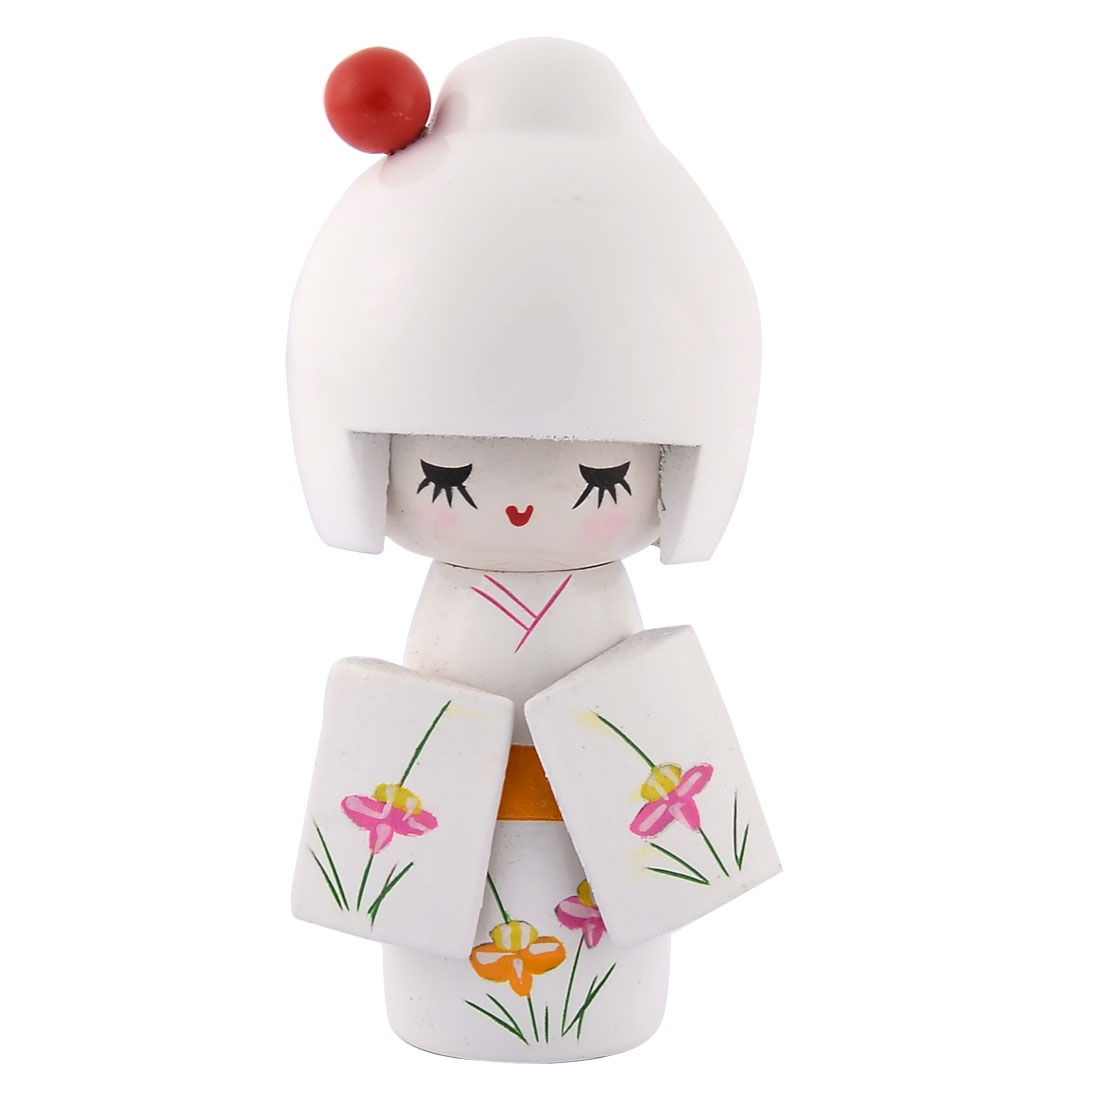 Present Gift Wooden Flower Print Smiling Japanese Girl Kimono Kokeshi Doll White